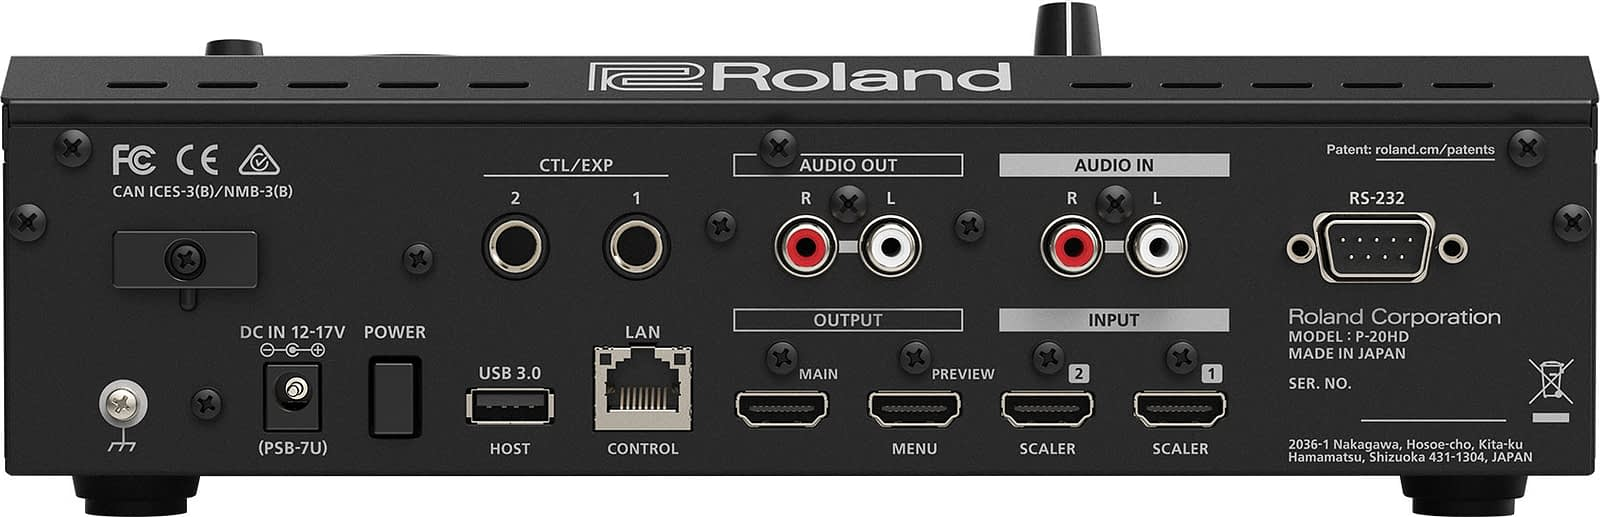 Roland P-20HD Rear Connections